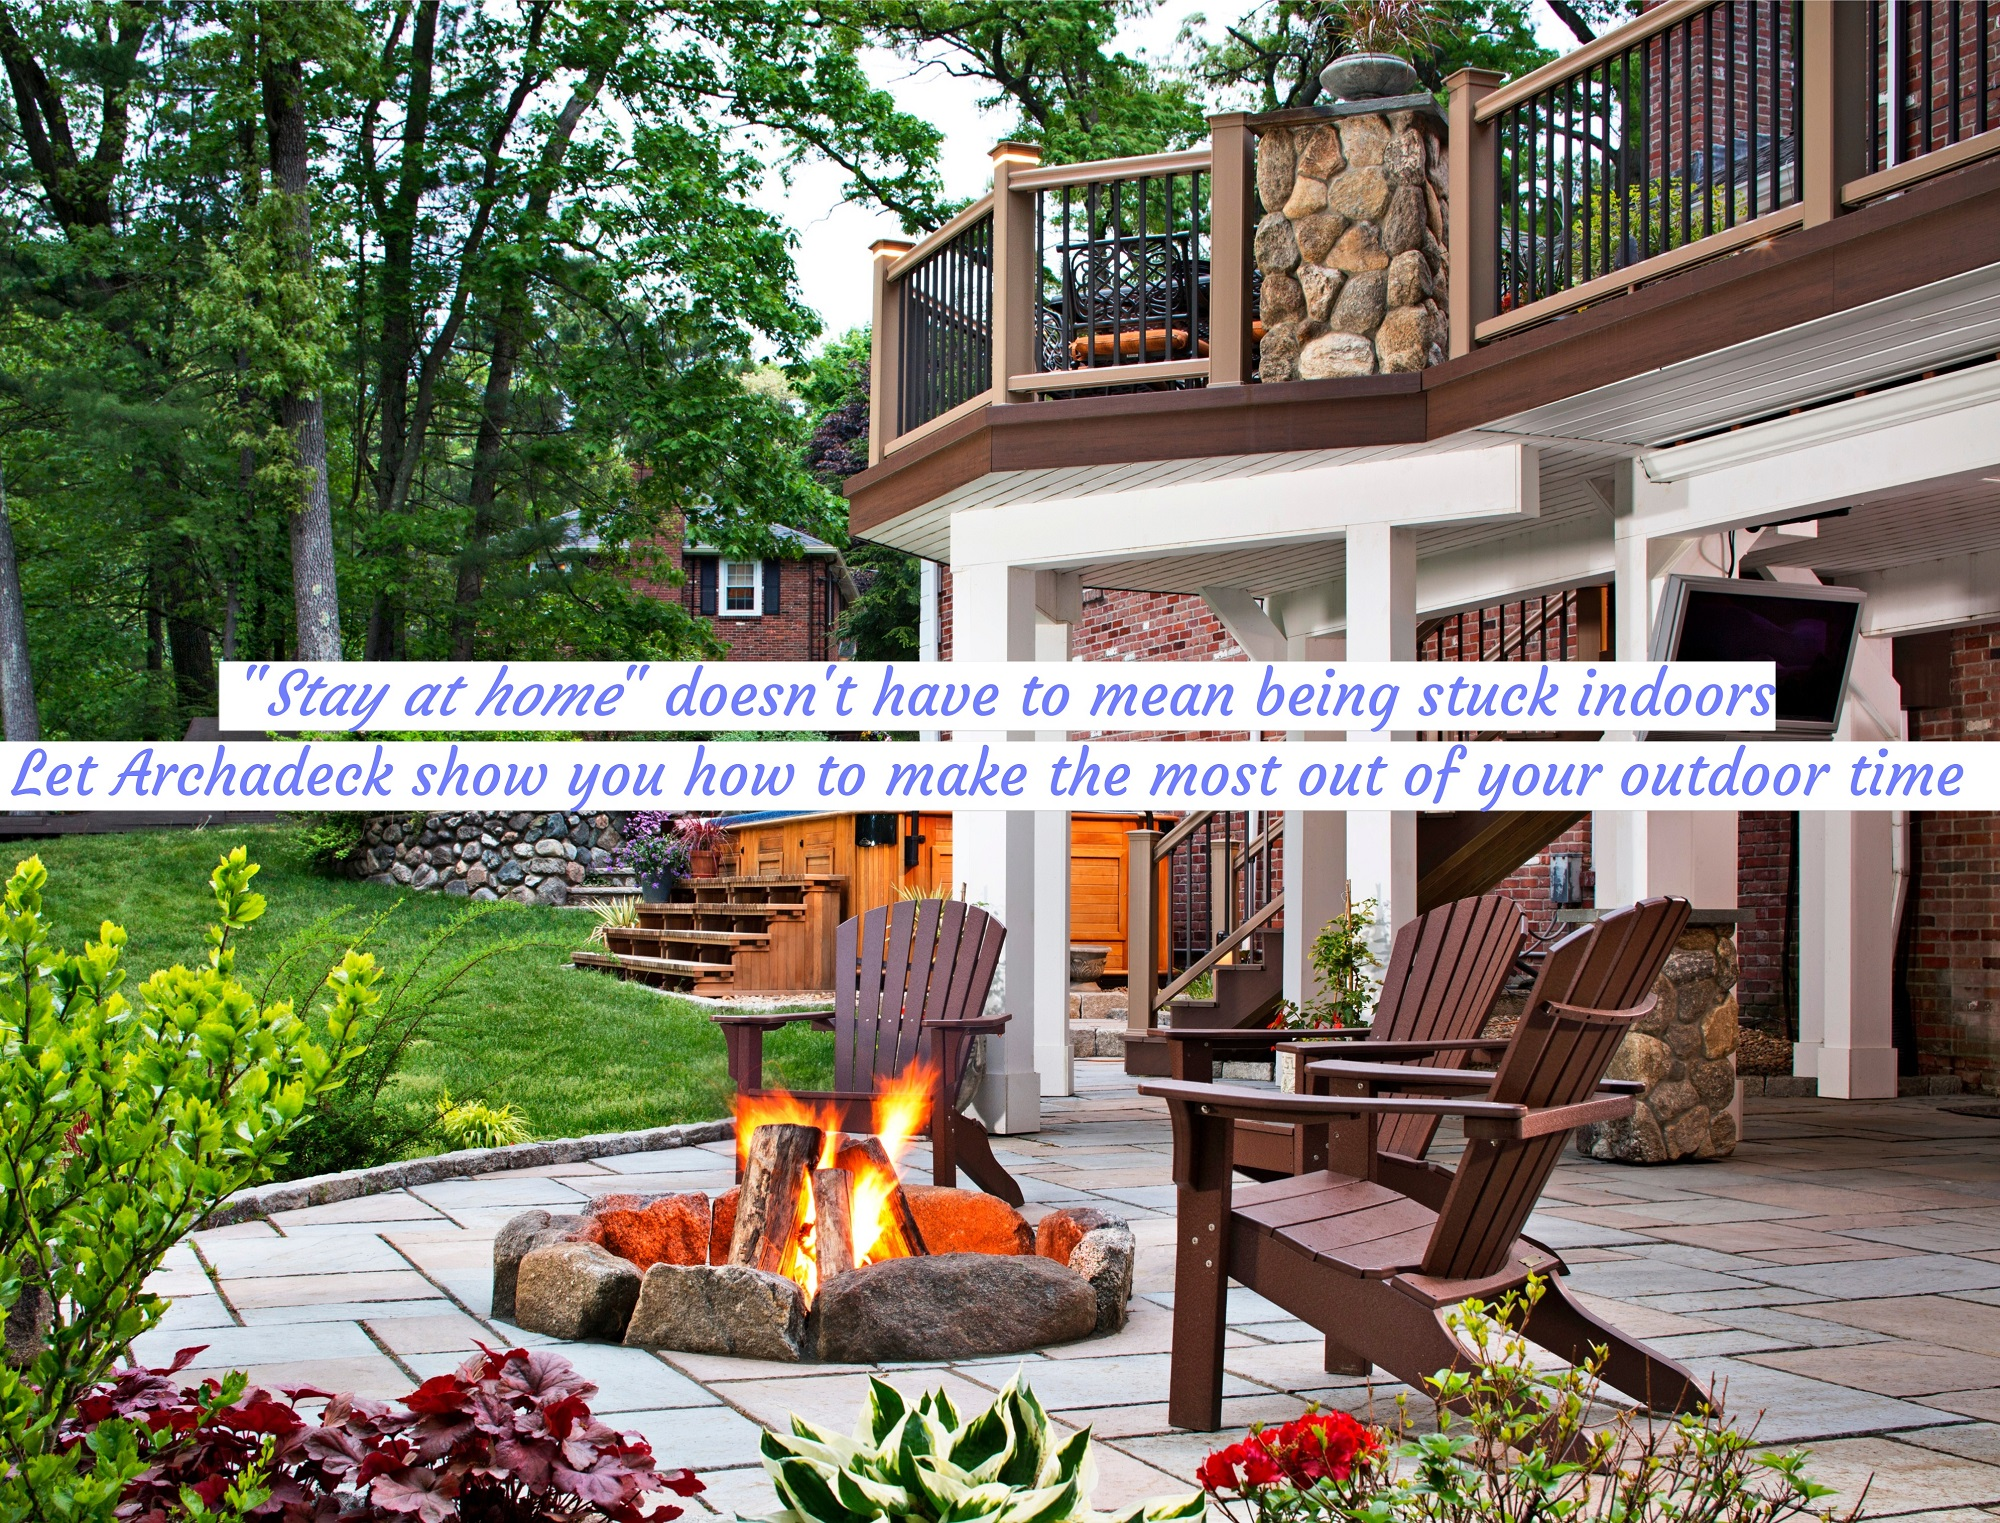 Don't-let-down-time-become-lost-time-for-outdoor-living-enjoyment-this-season